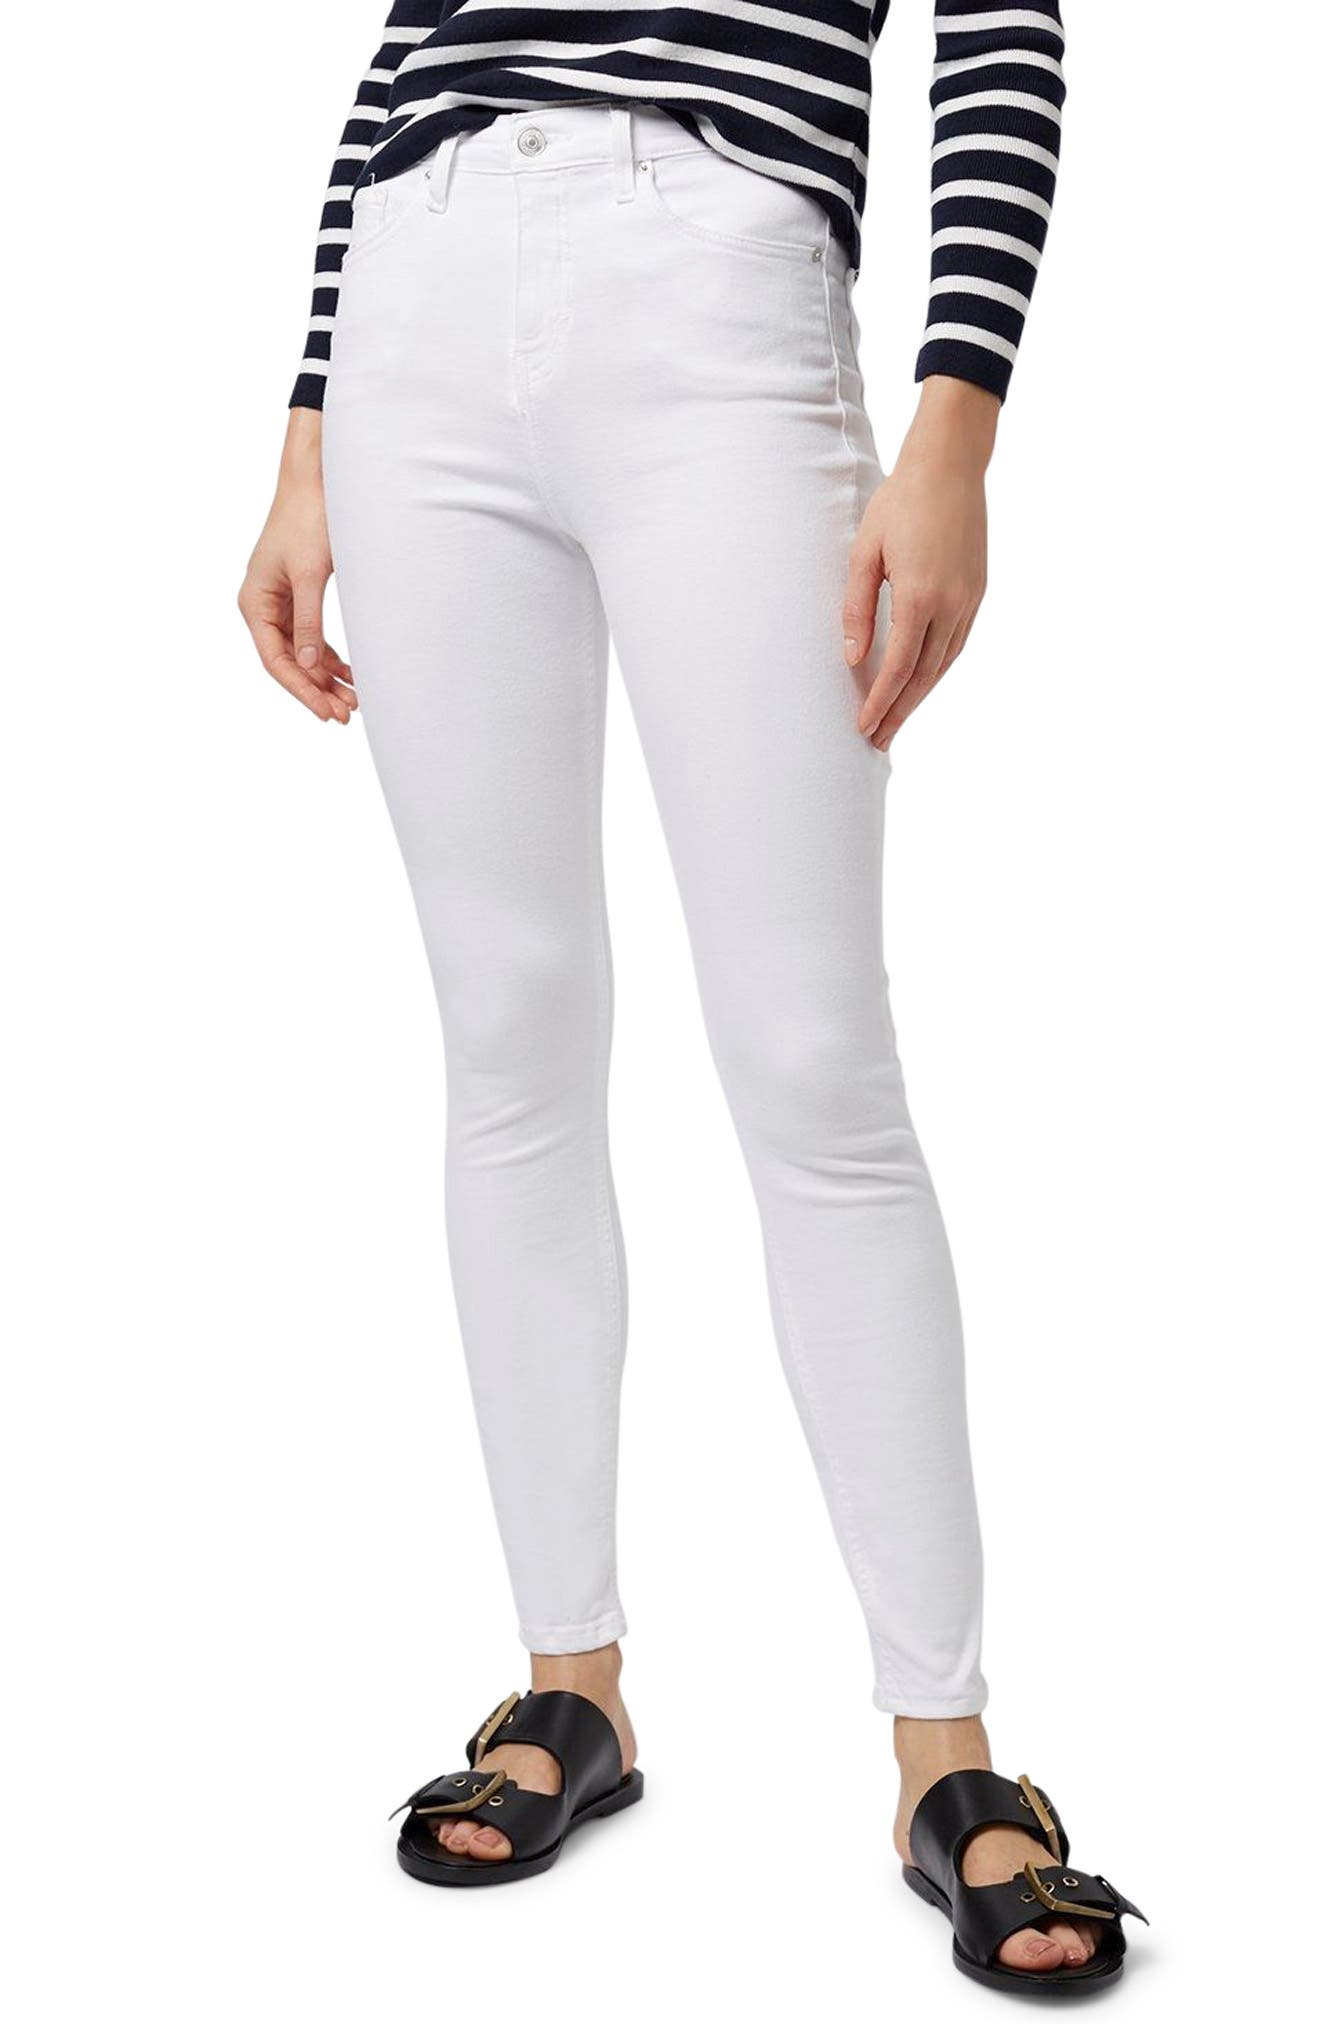 Moto Jamie Jeans,                         Main,                         color, White